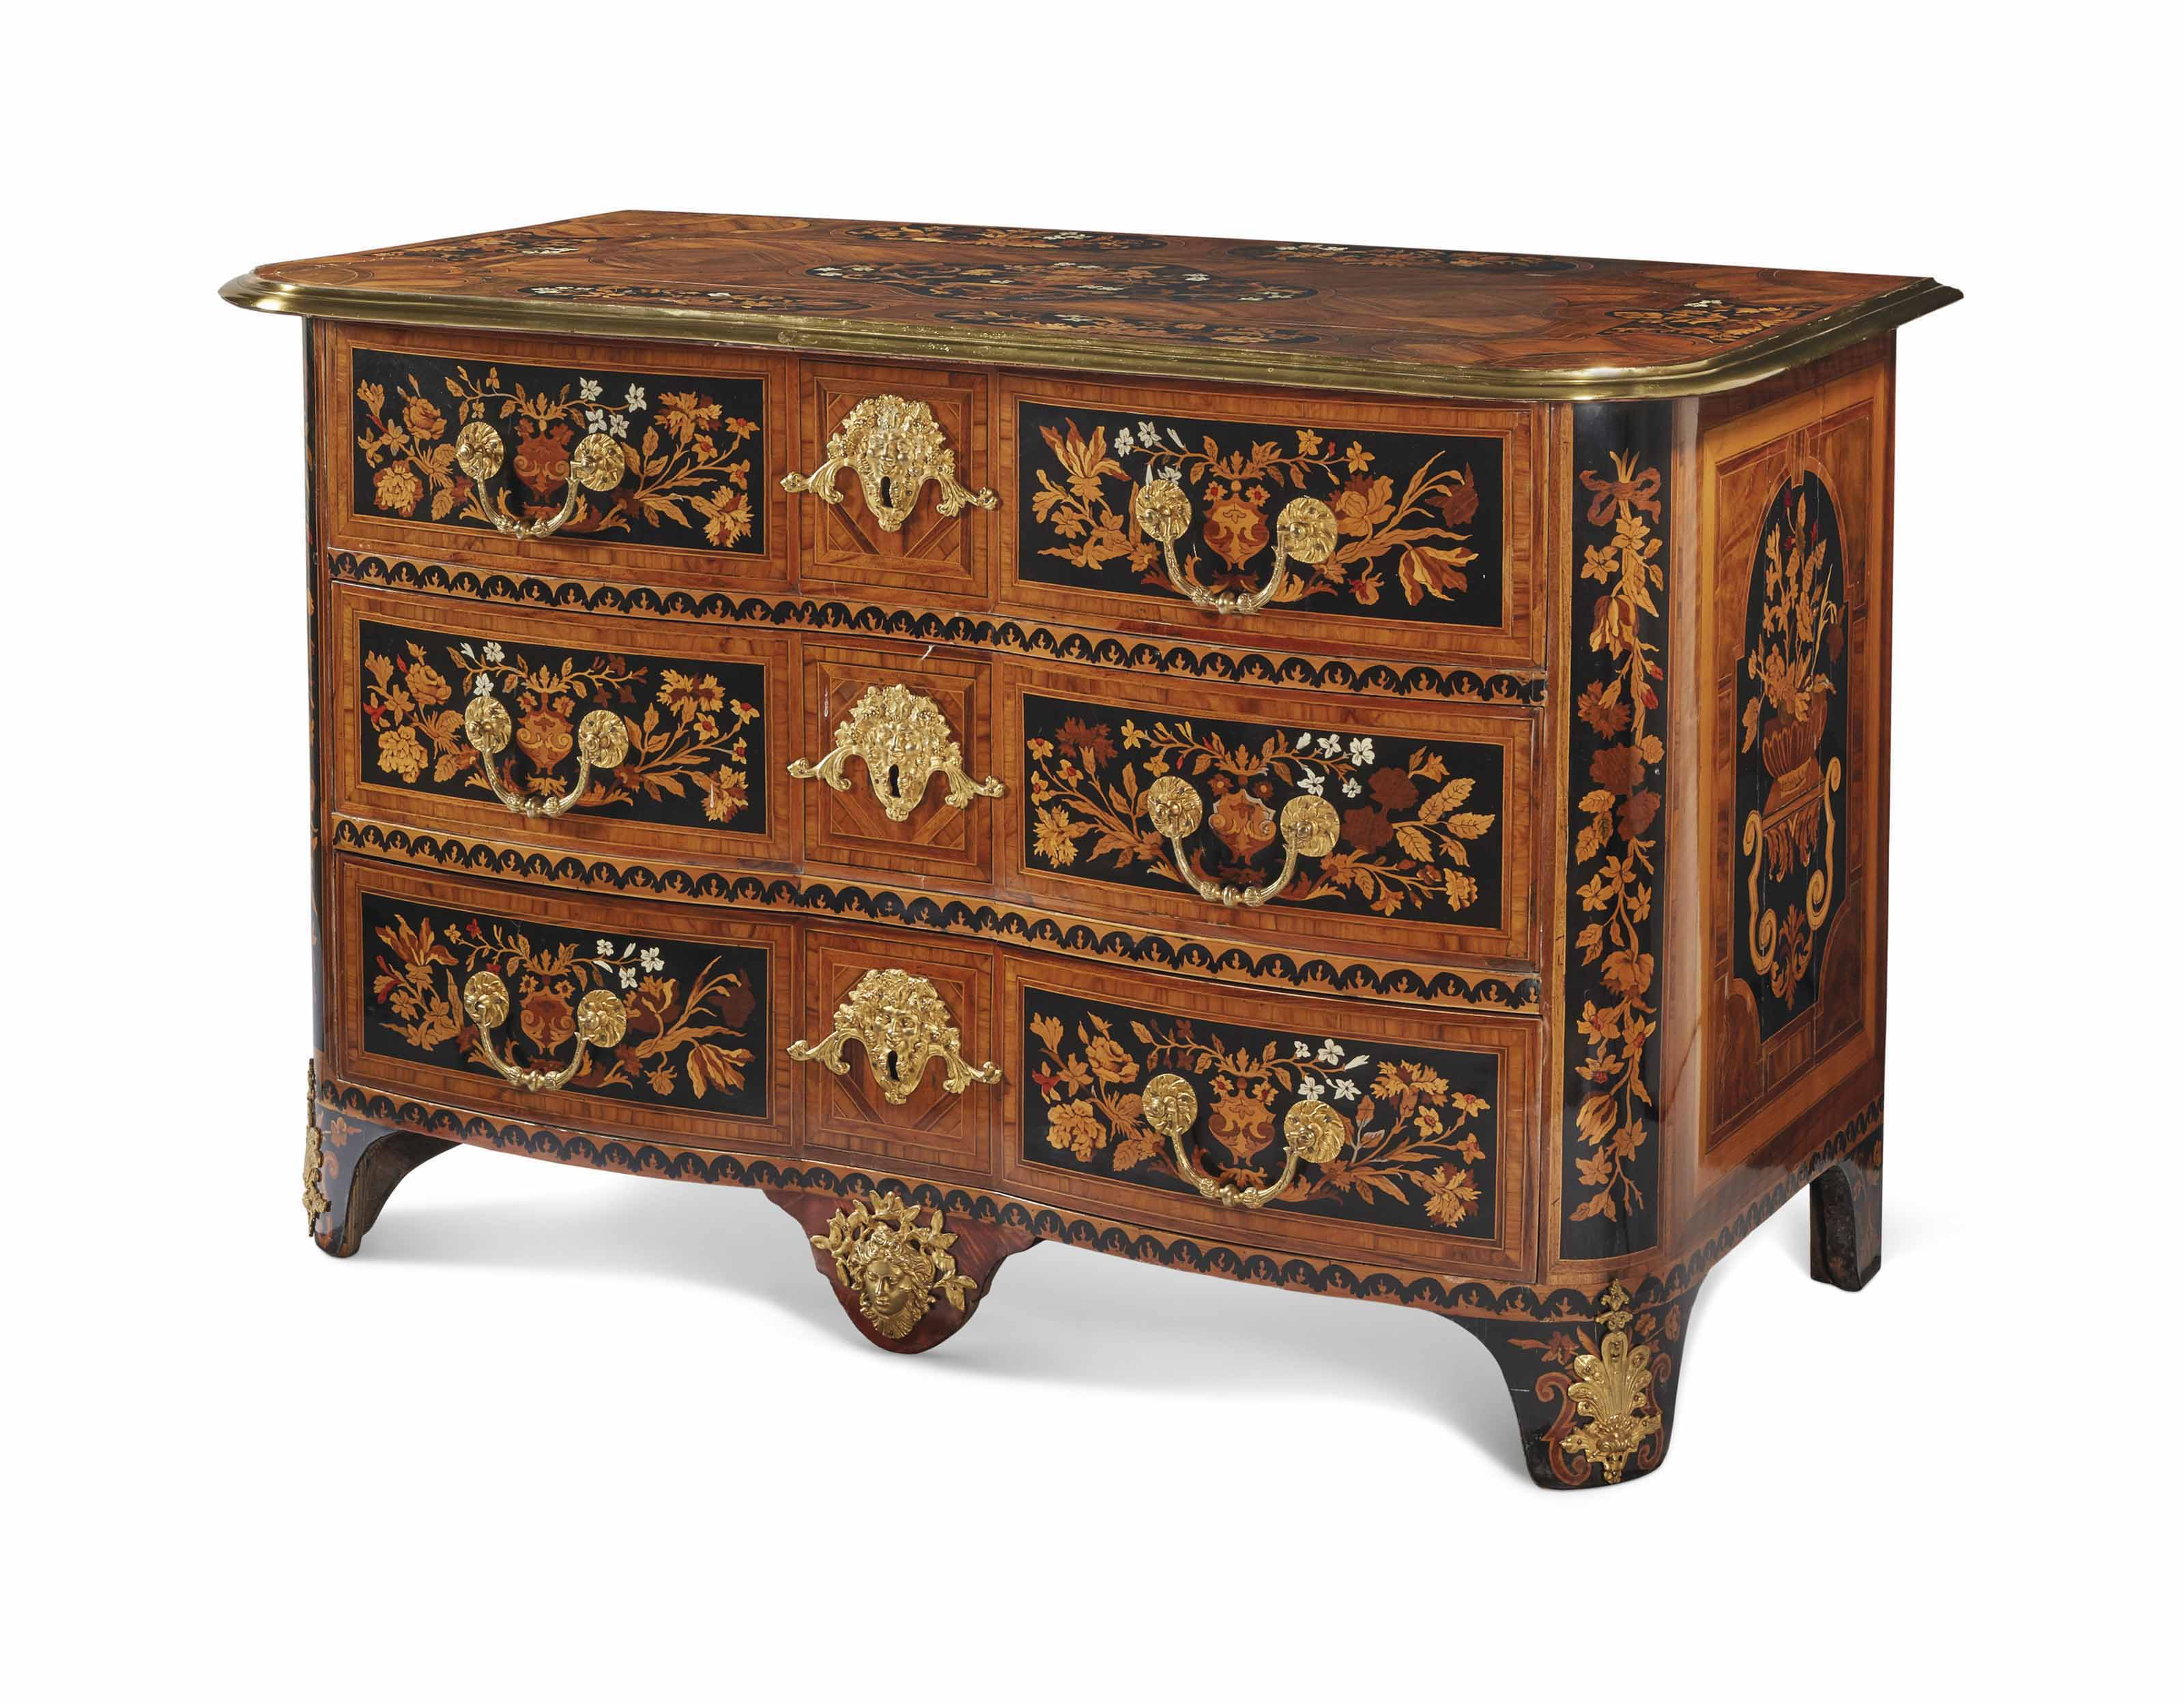 commode de style louis xiv comprenant des elements anciens christie 39 s. Black Bedroom Furniture Sets. Home Design Ideas